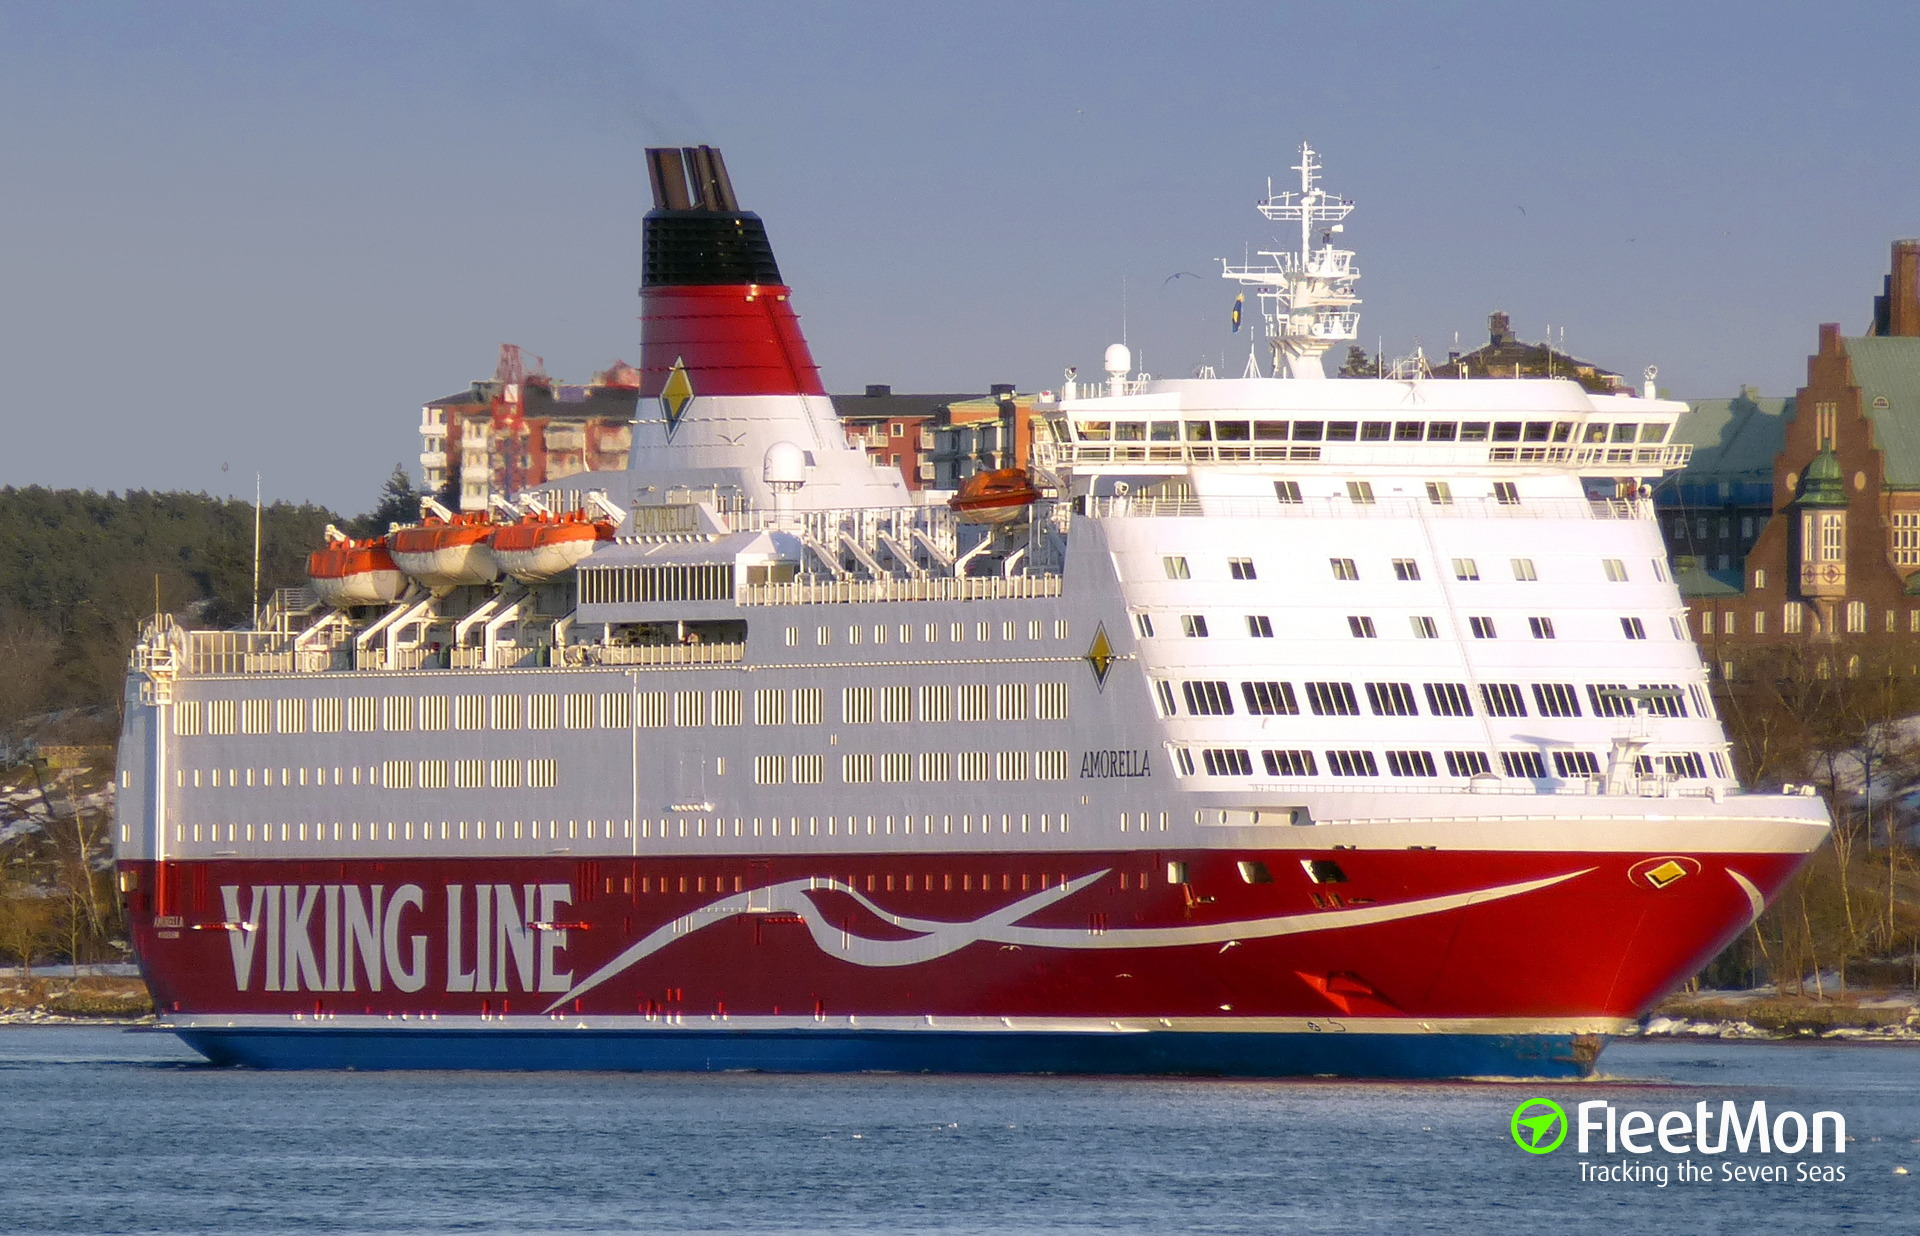 Viking Line's Amorella grounded off Aland Islands